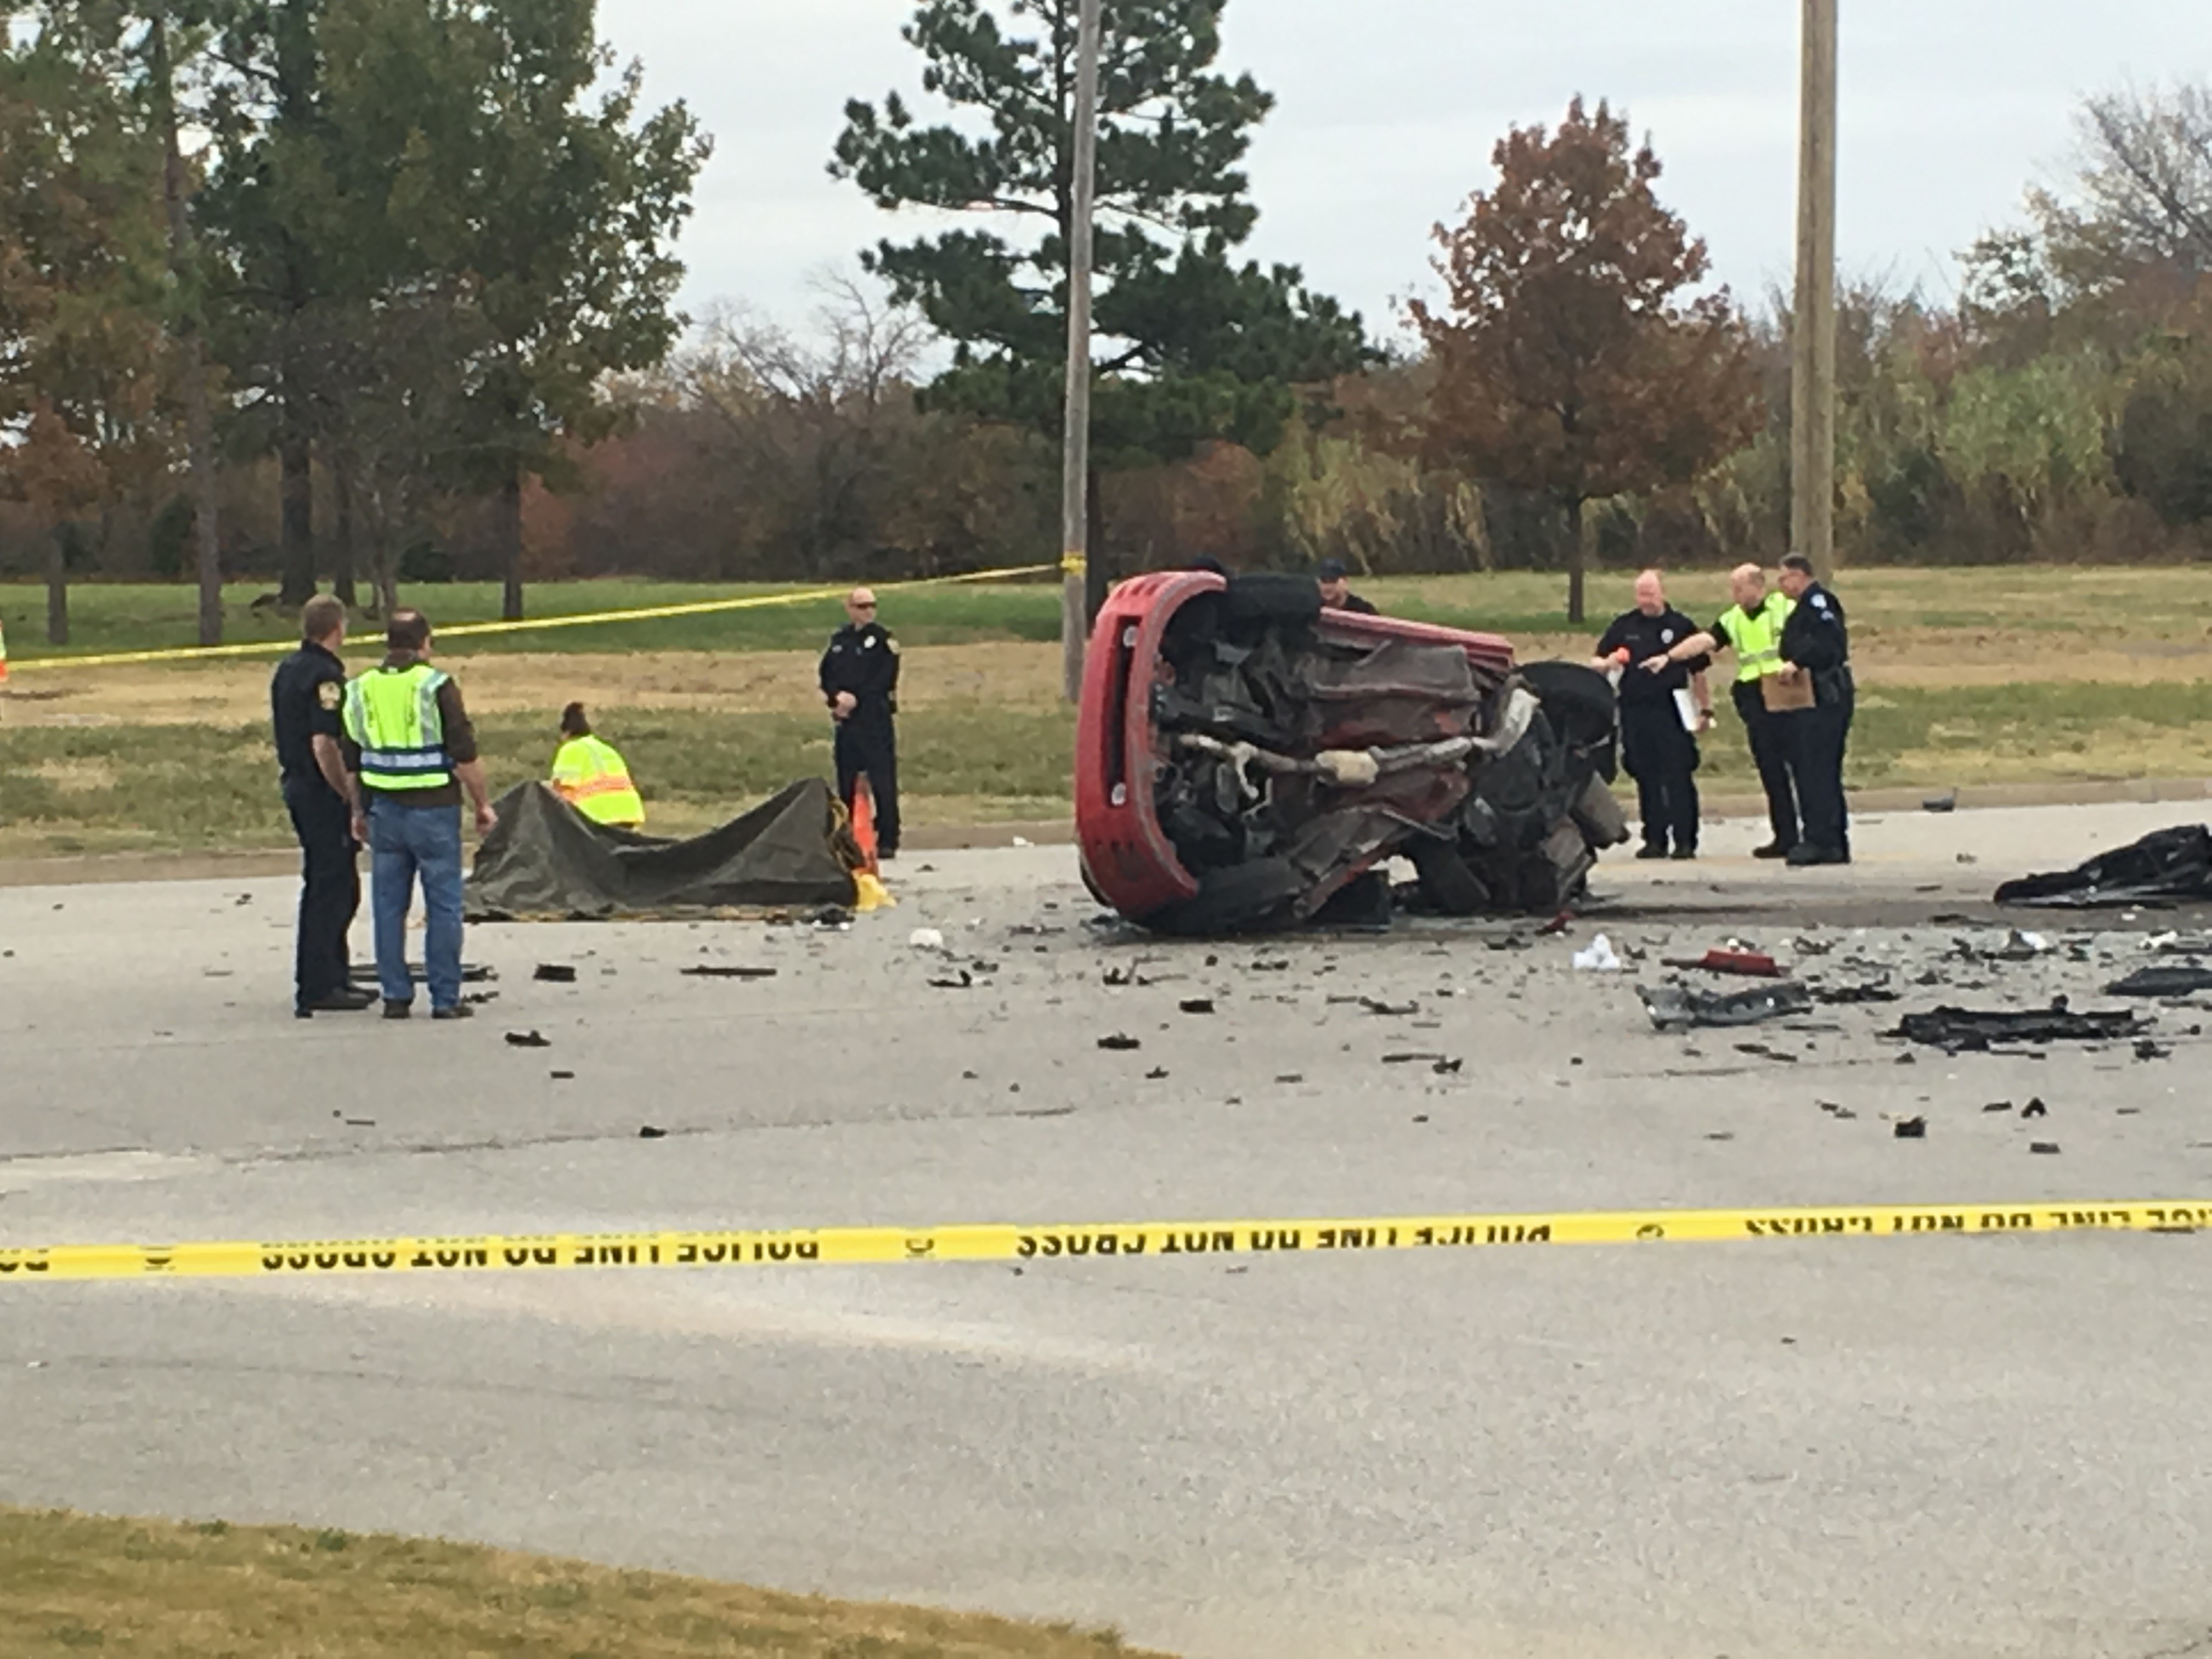 The Glenpool Police Department is investigating a deadly vehicle accident near Highway 117 and West 121t Street South in Glenpool. (KTUL){&amp;nbsp;}<p></p>